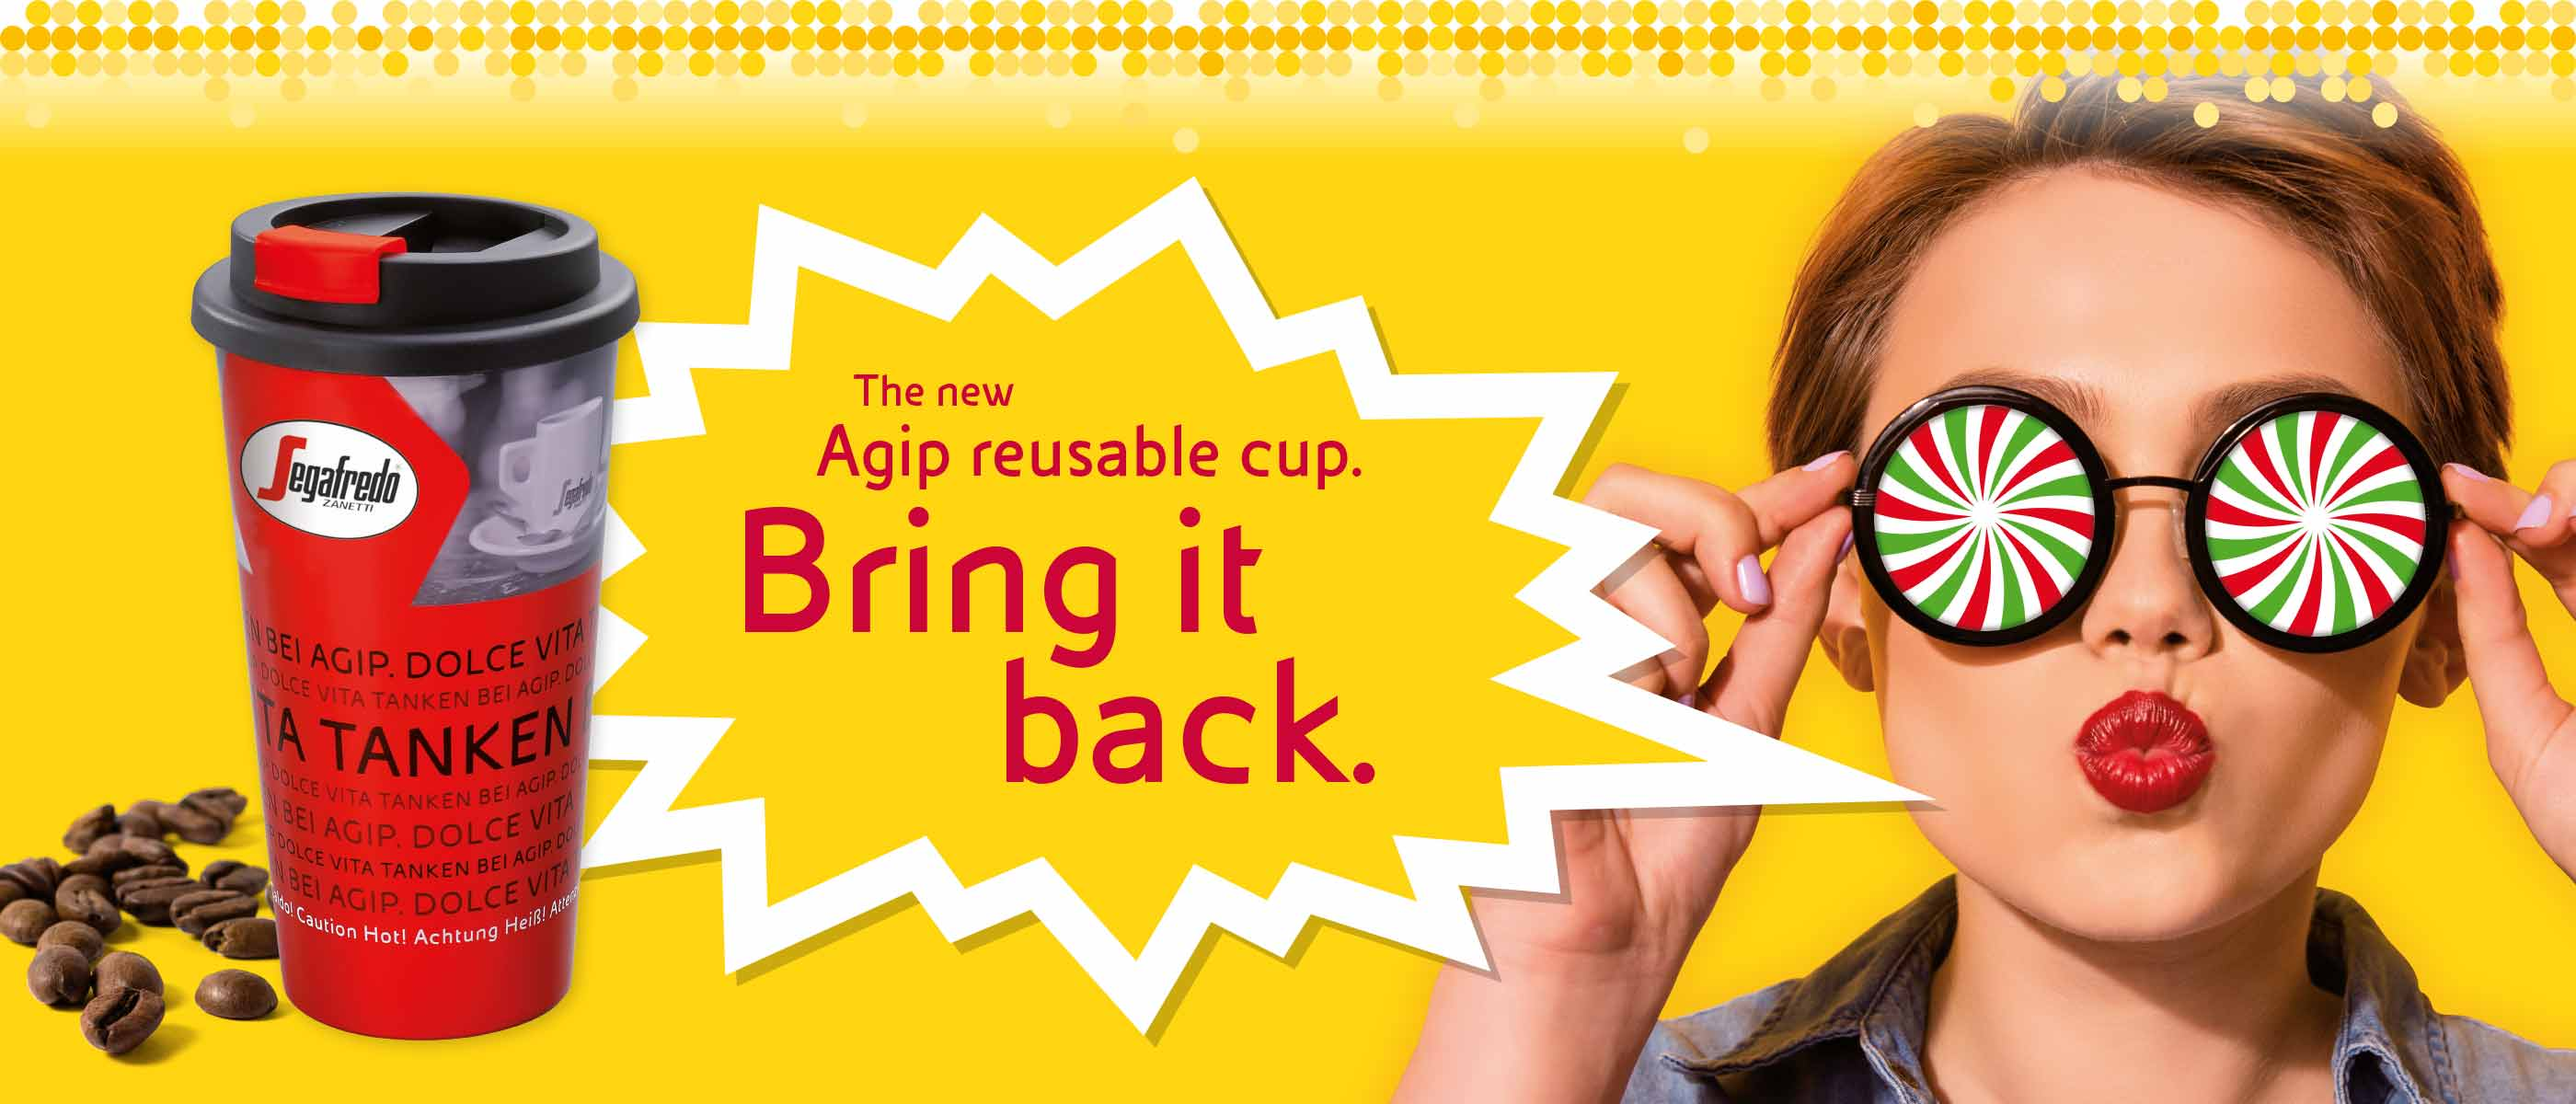 The new Agip Reusable Cup